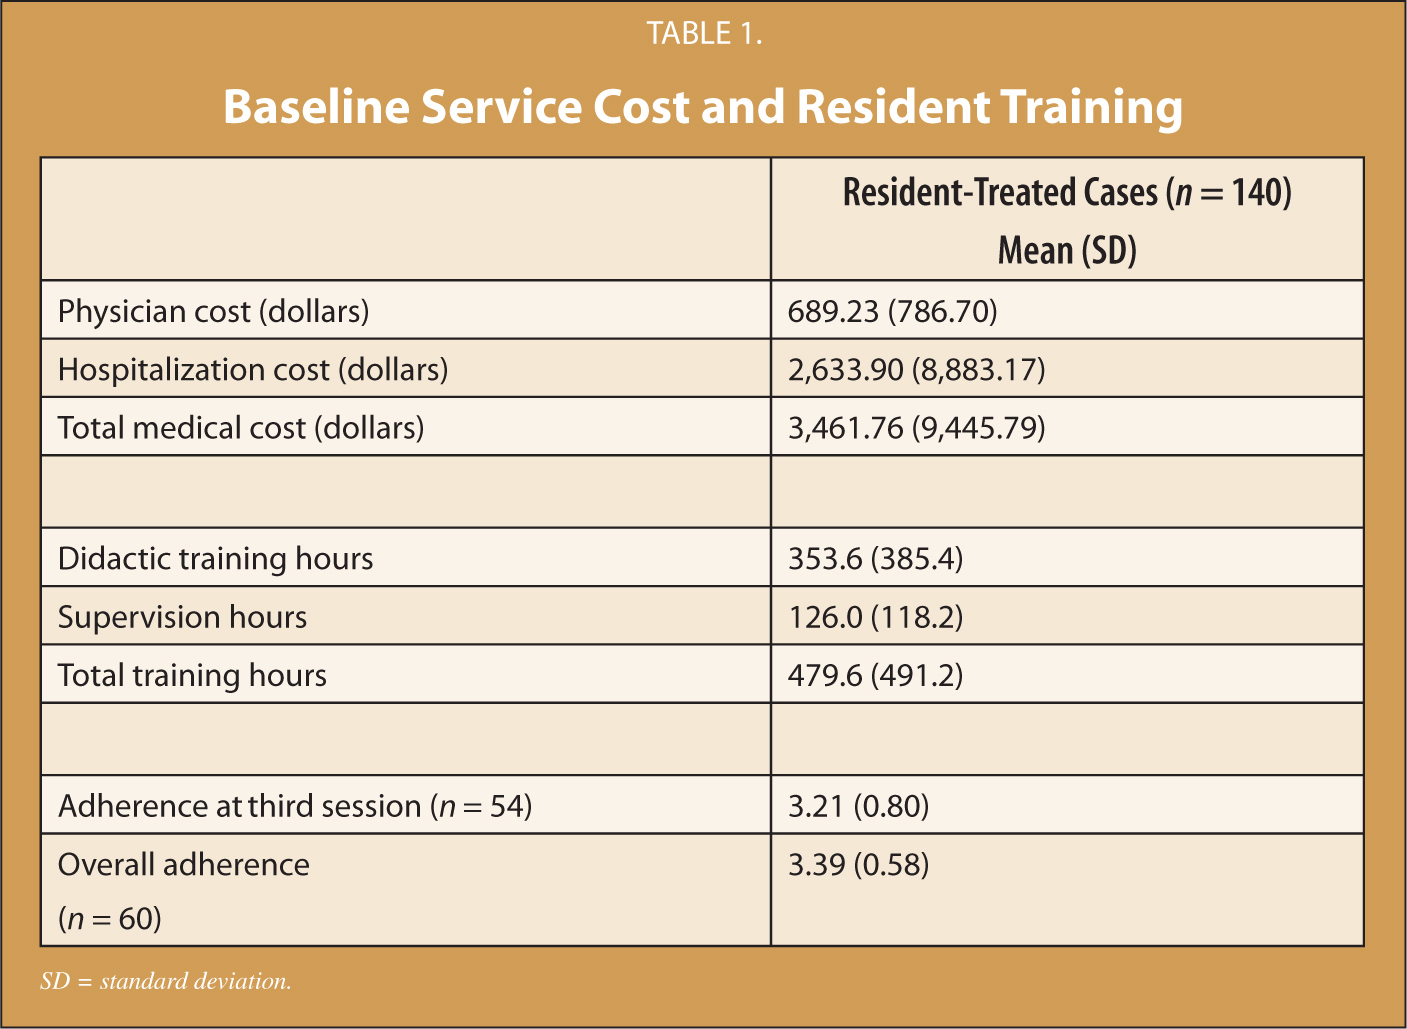 Baseline Service Cost and Resident Training